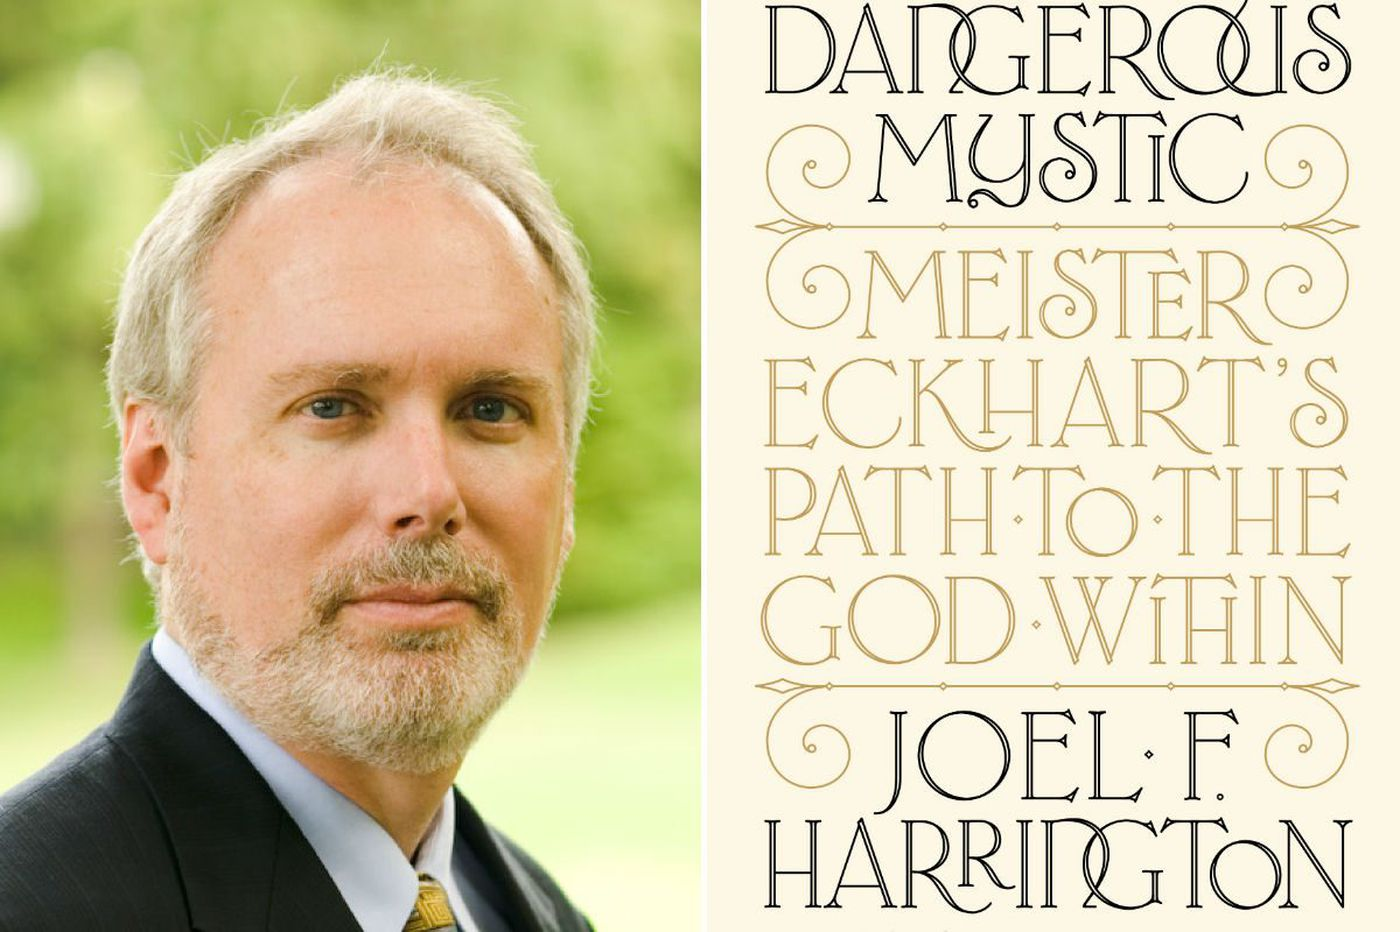 'Dangerous Mystic': A true, gripping tale of a man's perilous search for God